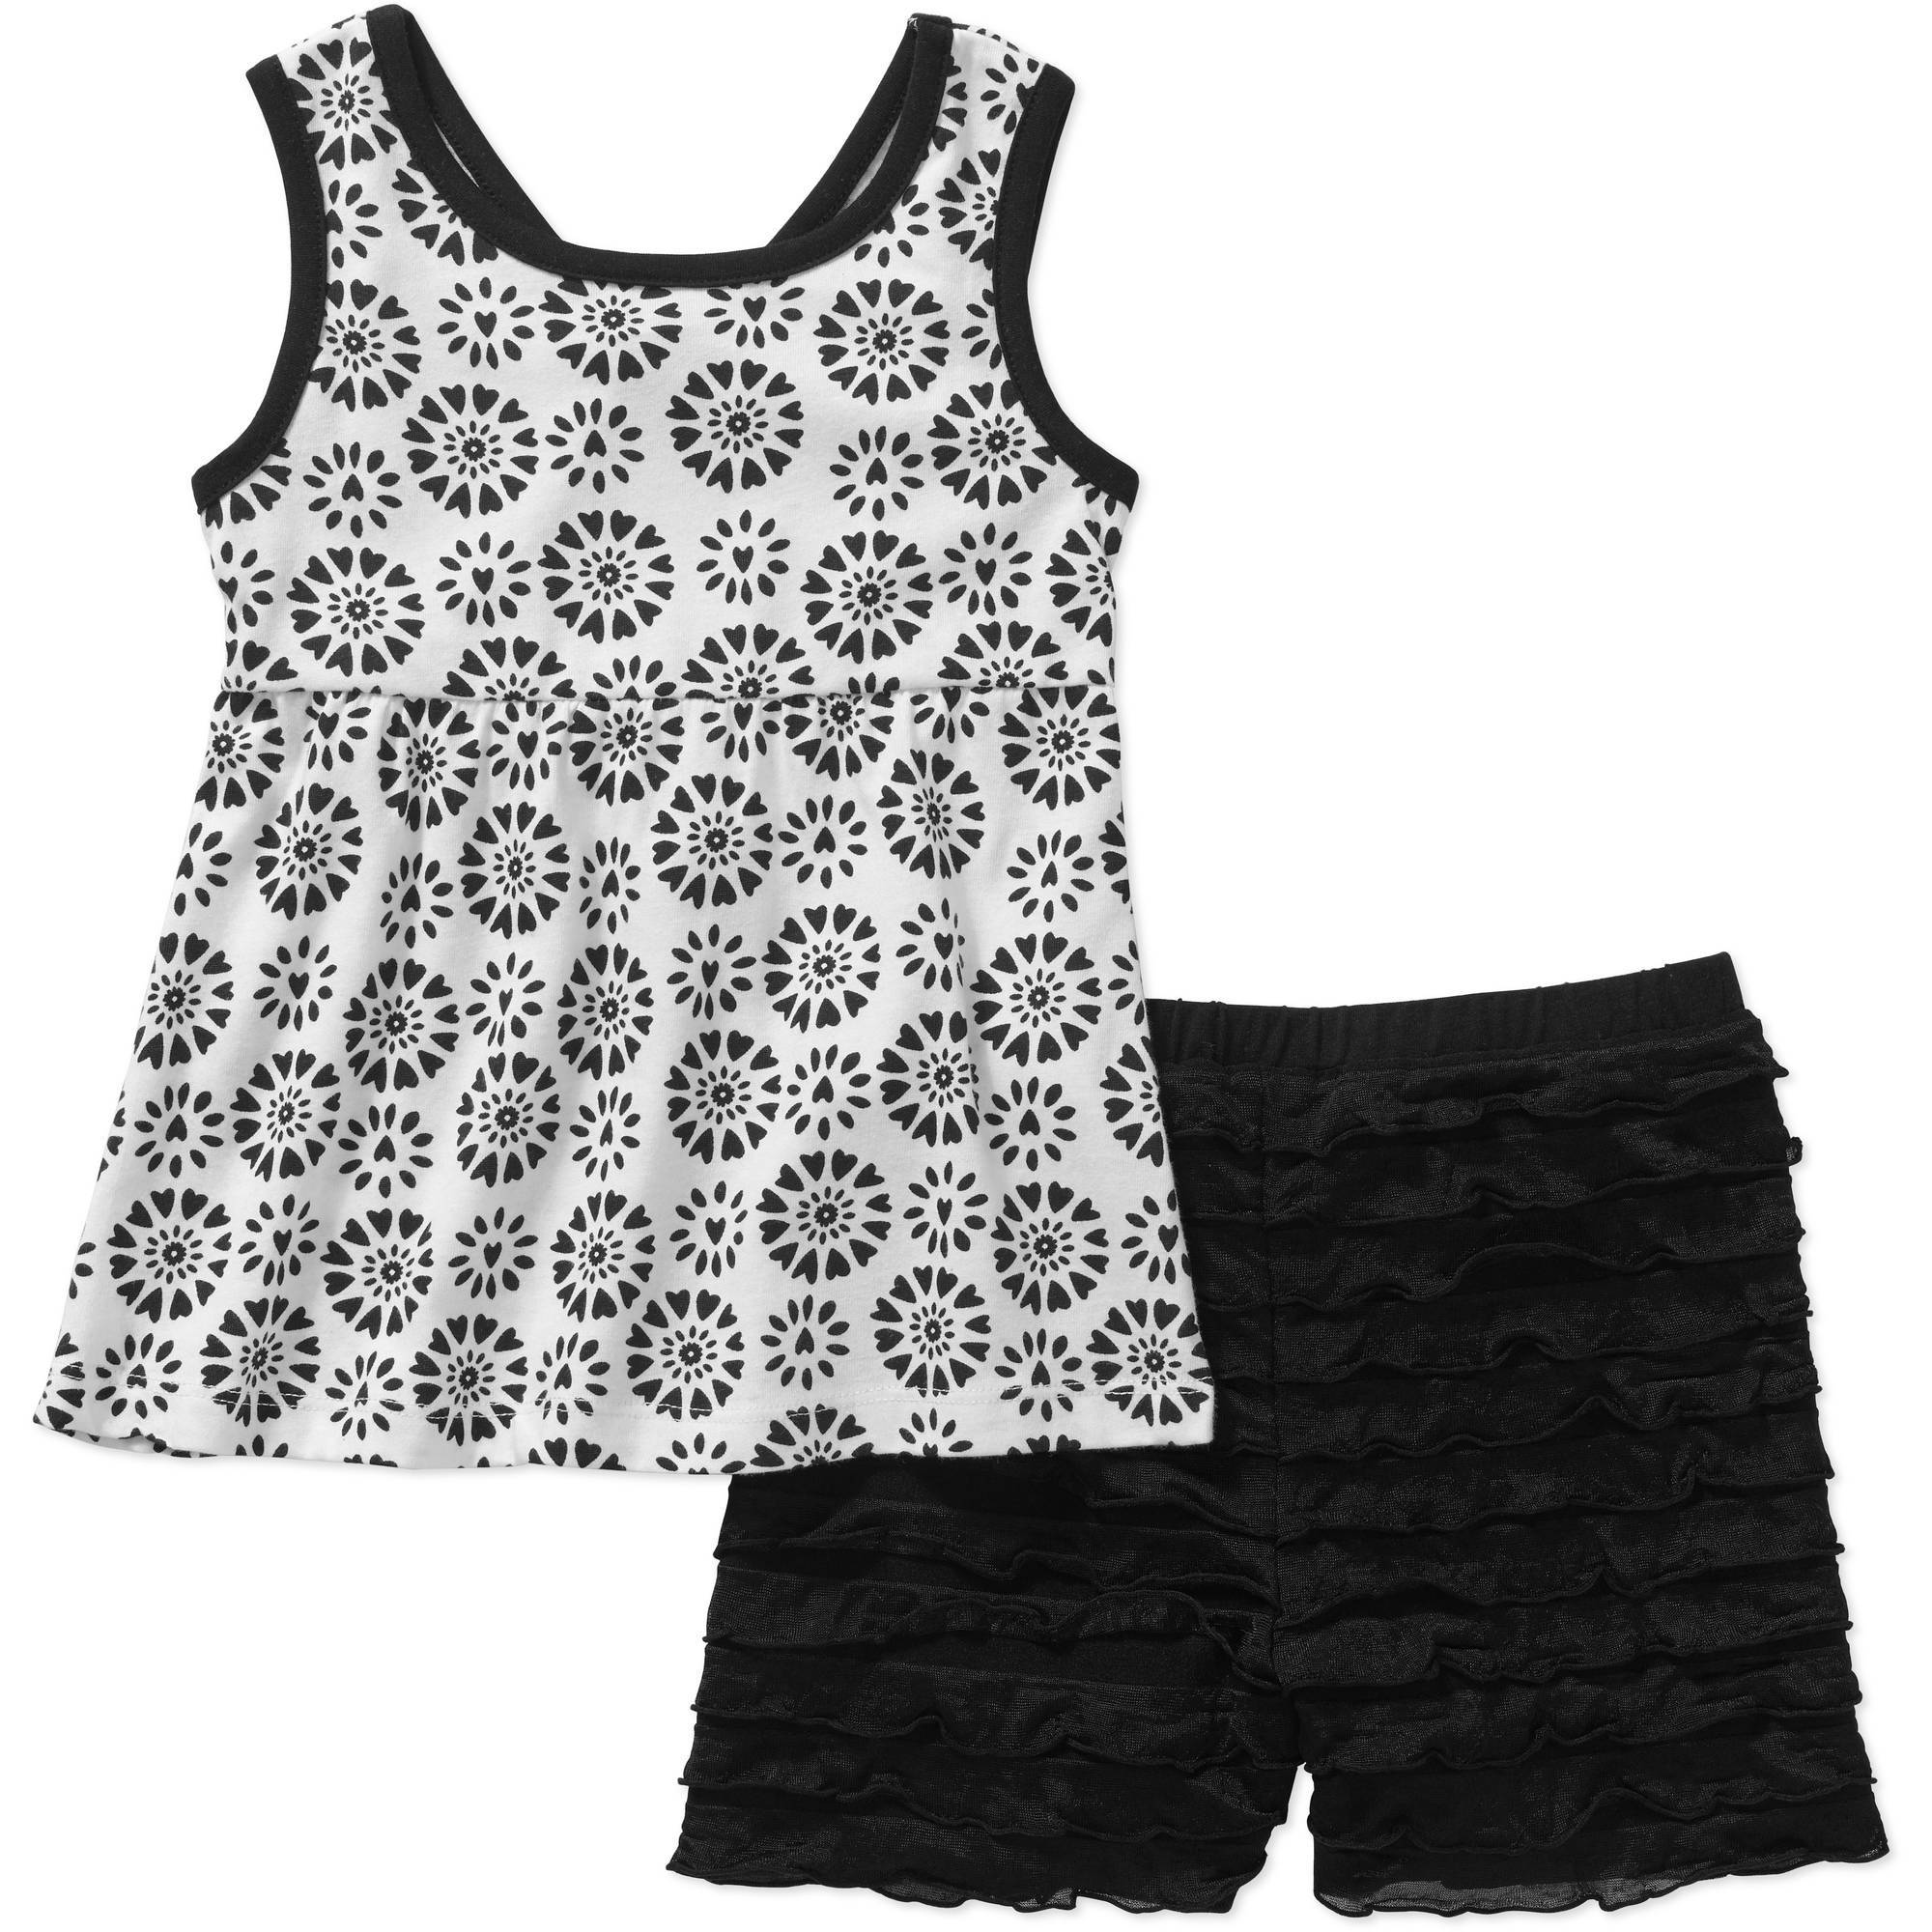 Healthtex Baby Toddler Girl Fashion Tank and Shorts 2-Piece Outfit Set